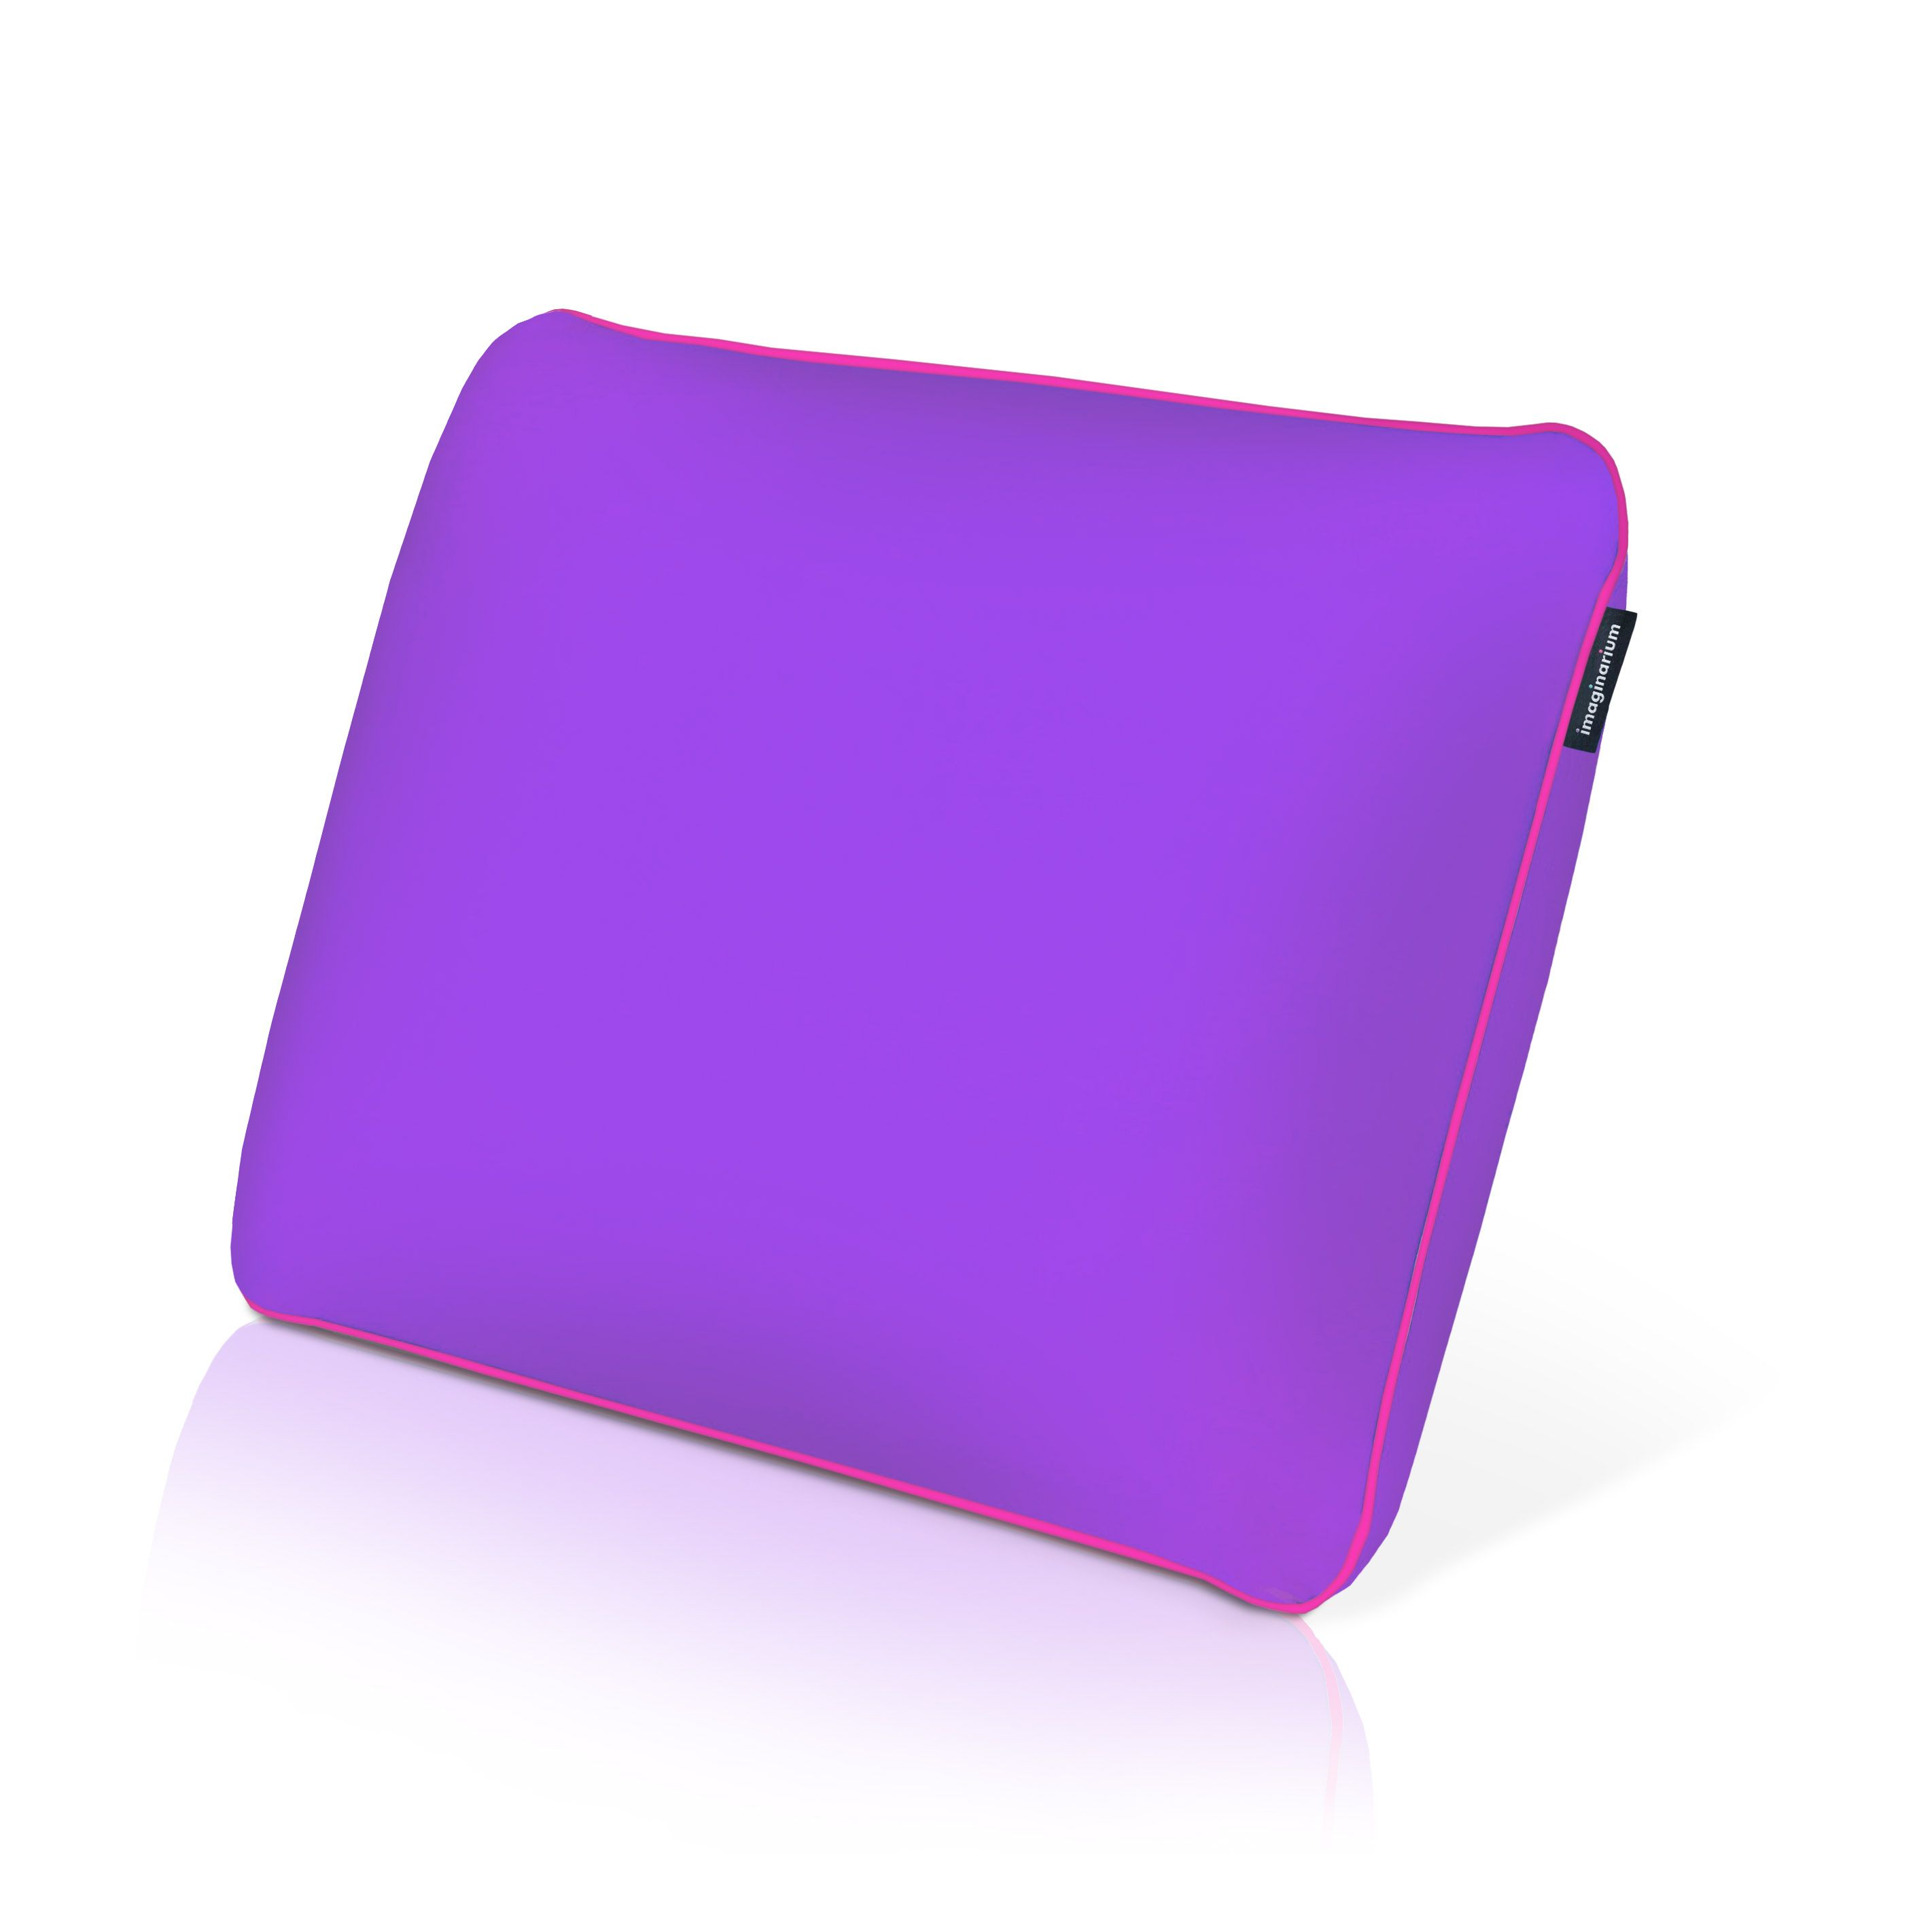 memory foam fun pillow with cool to the touch cover galactic purple 2 pack